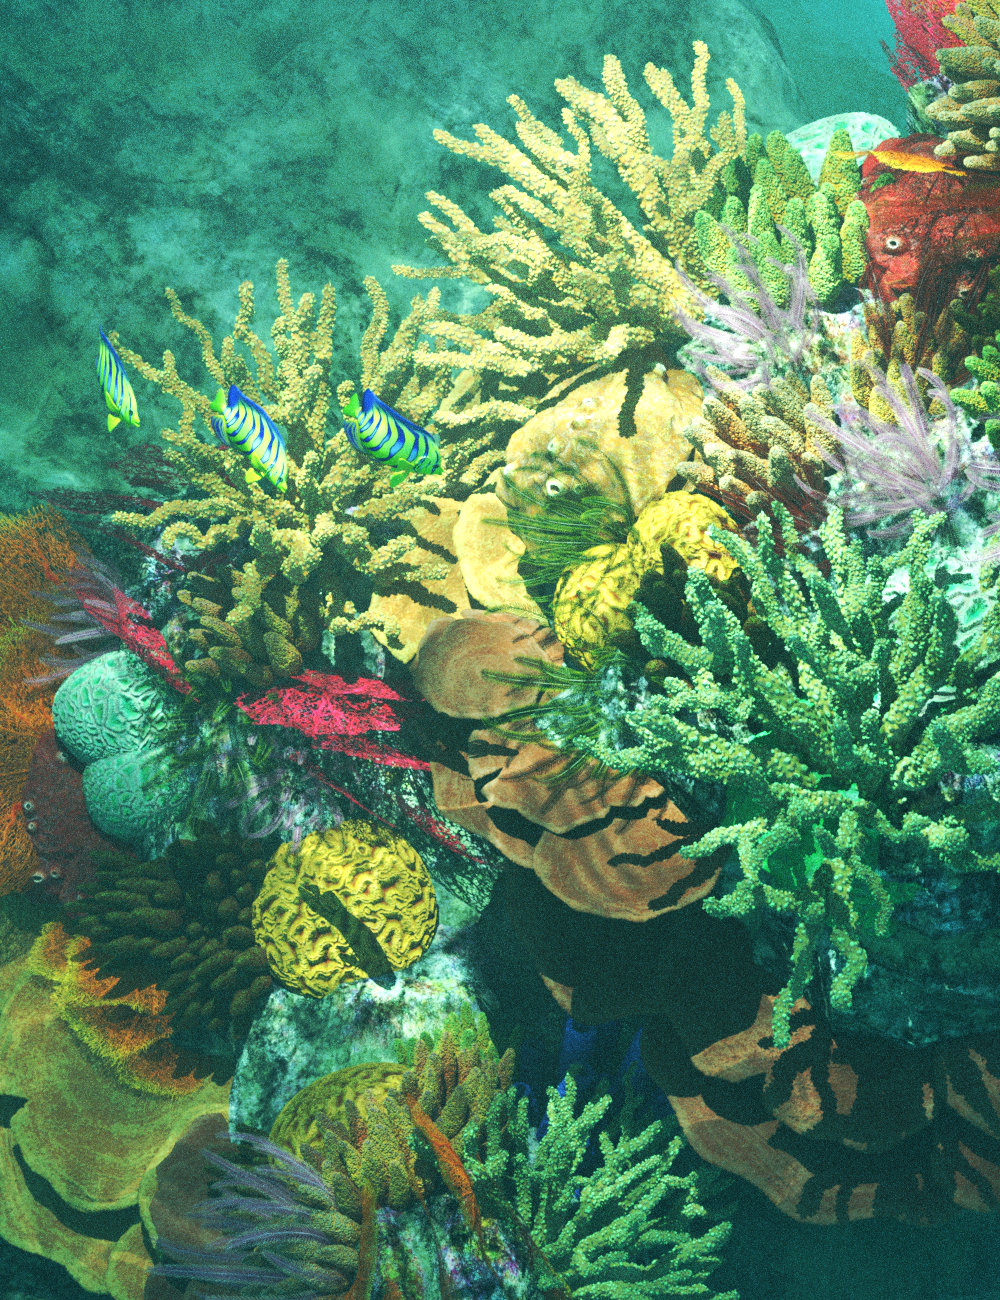 v176 Iray Coral Reef by: vikike176, 3D Models by Daz 3D